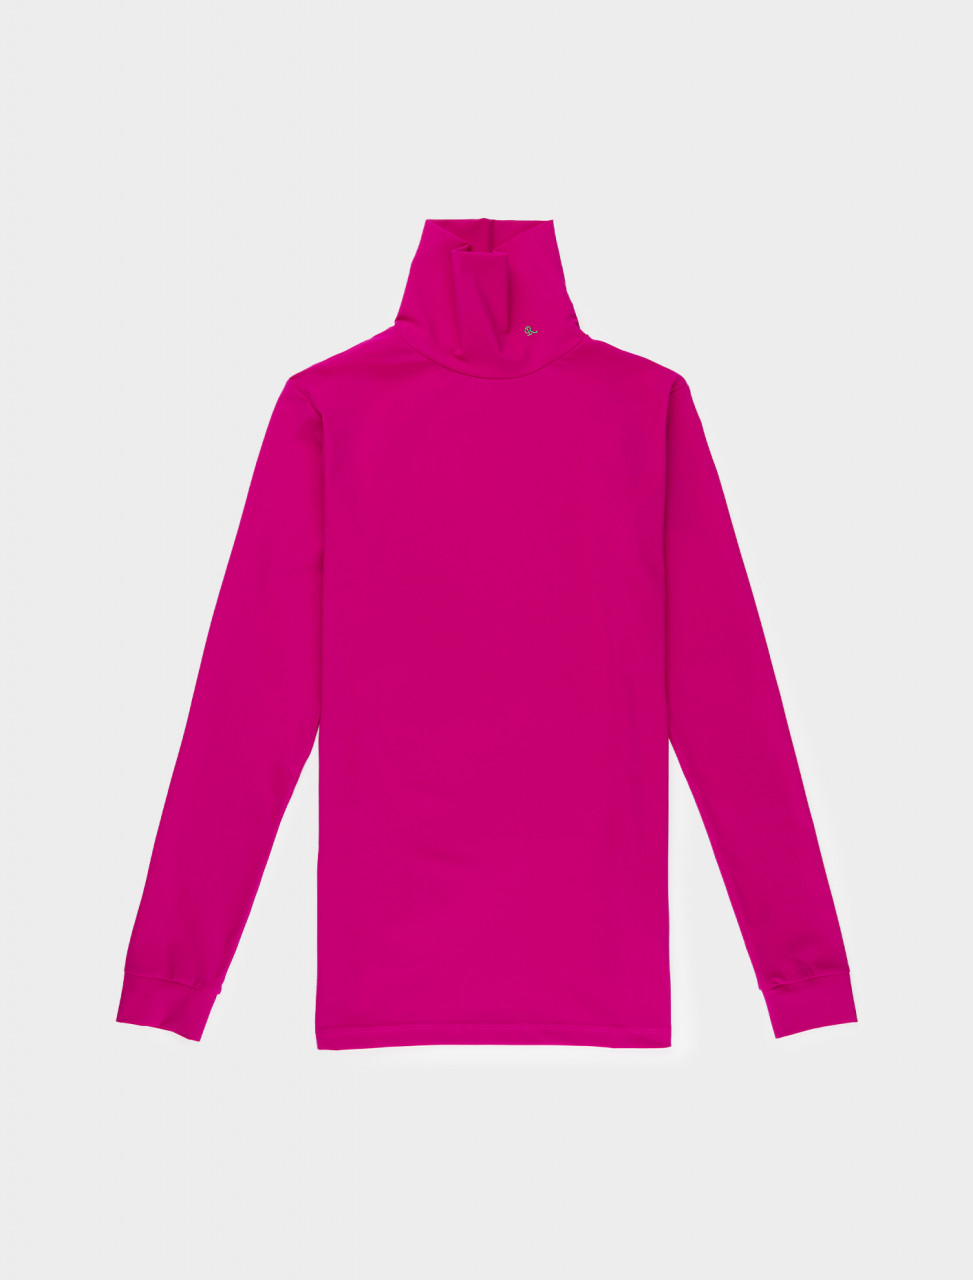 162-202-151-19016-00033 RAF SIMONS SOUS PULL W STANDING UP COLLAR NEON PINK